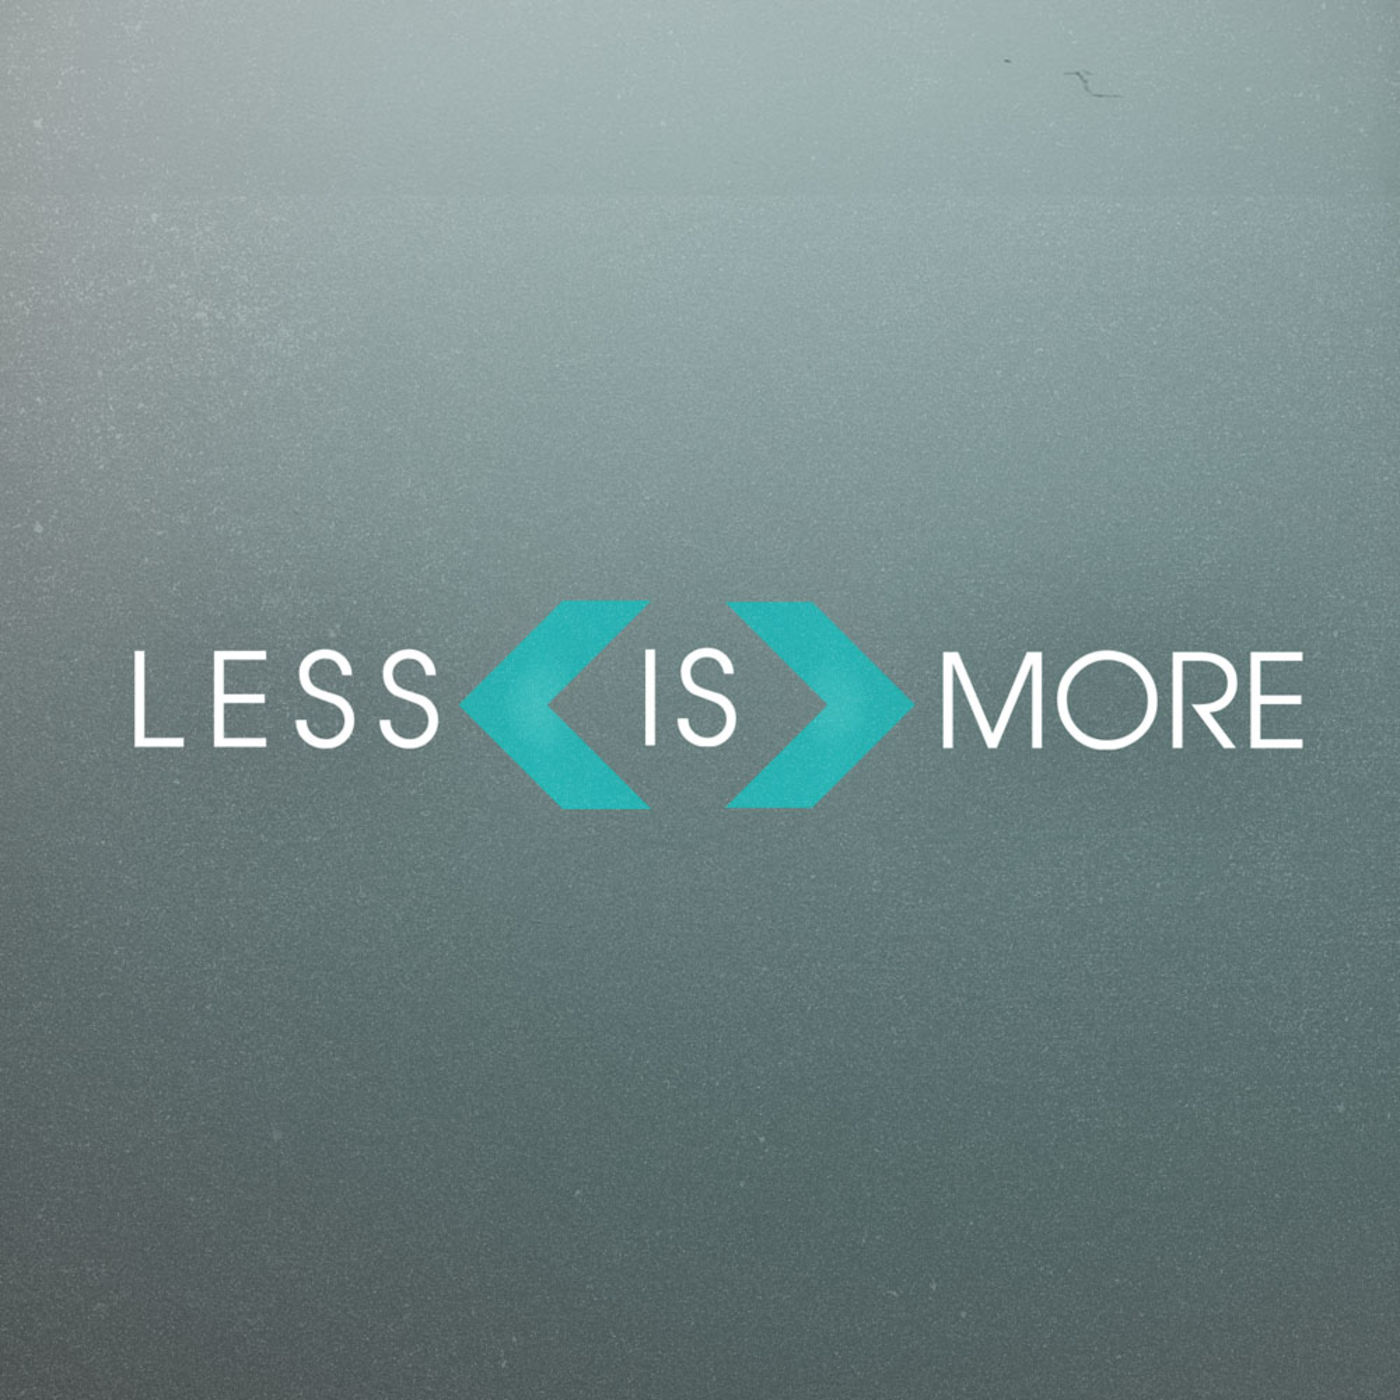 Less Addition | More Multiplication